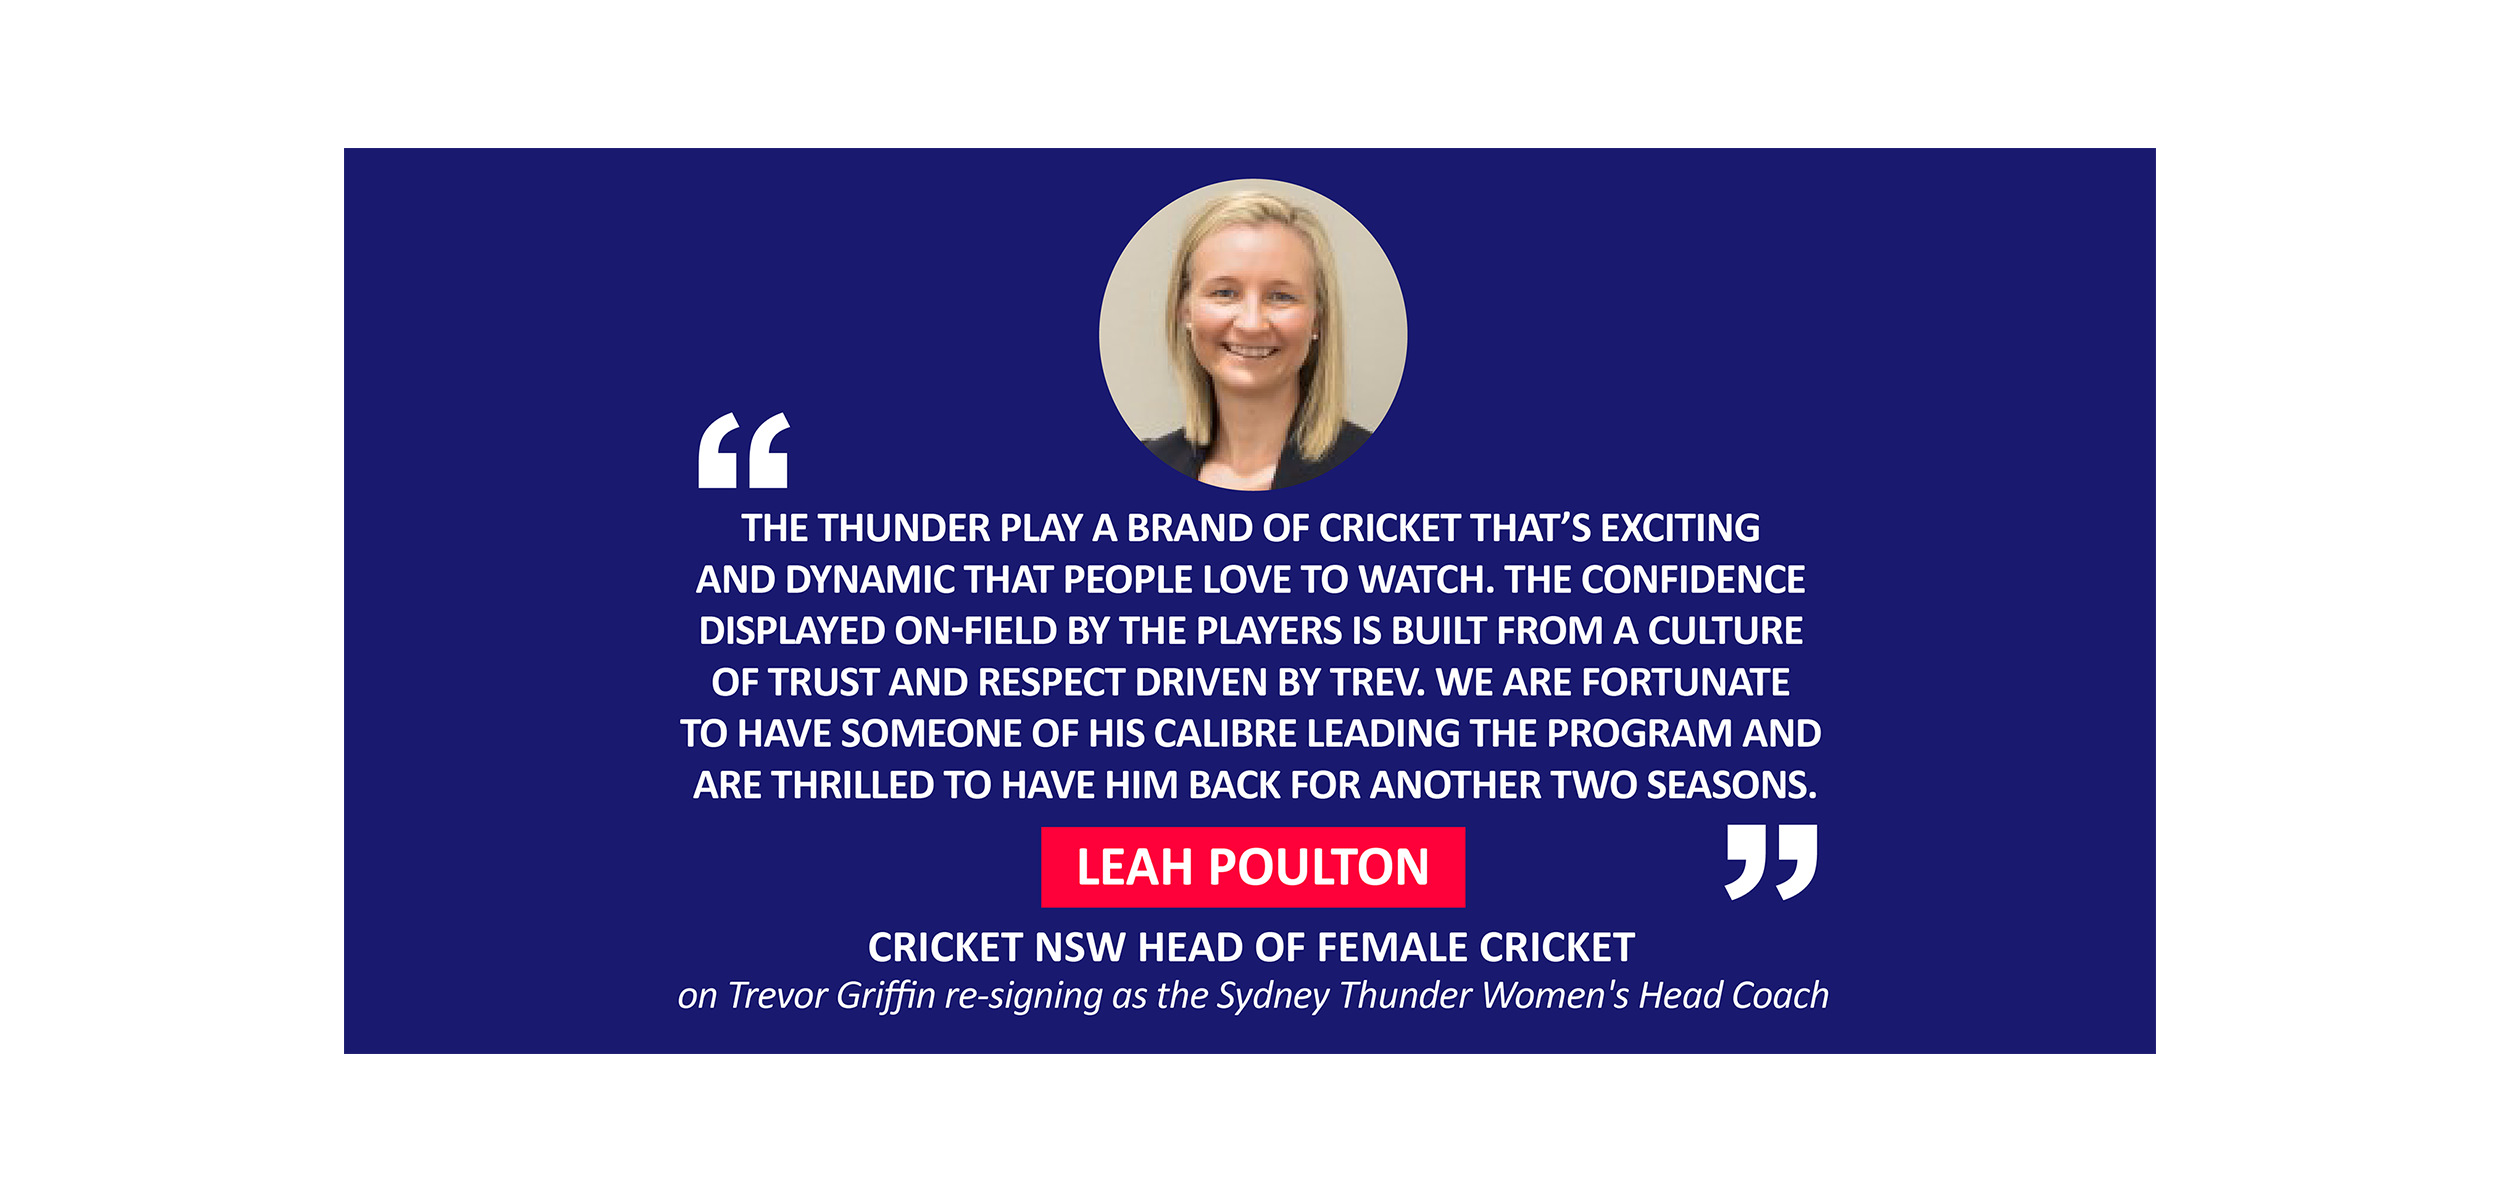 Leah Poulton, Cricket NSW Head of Female Cricket on Trevor Griffin re-signing as the Sydney Thunder Women's Head Coach